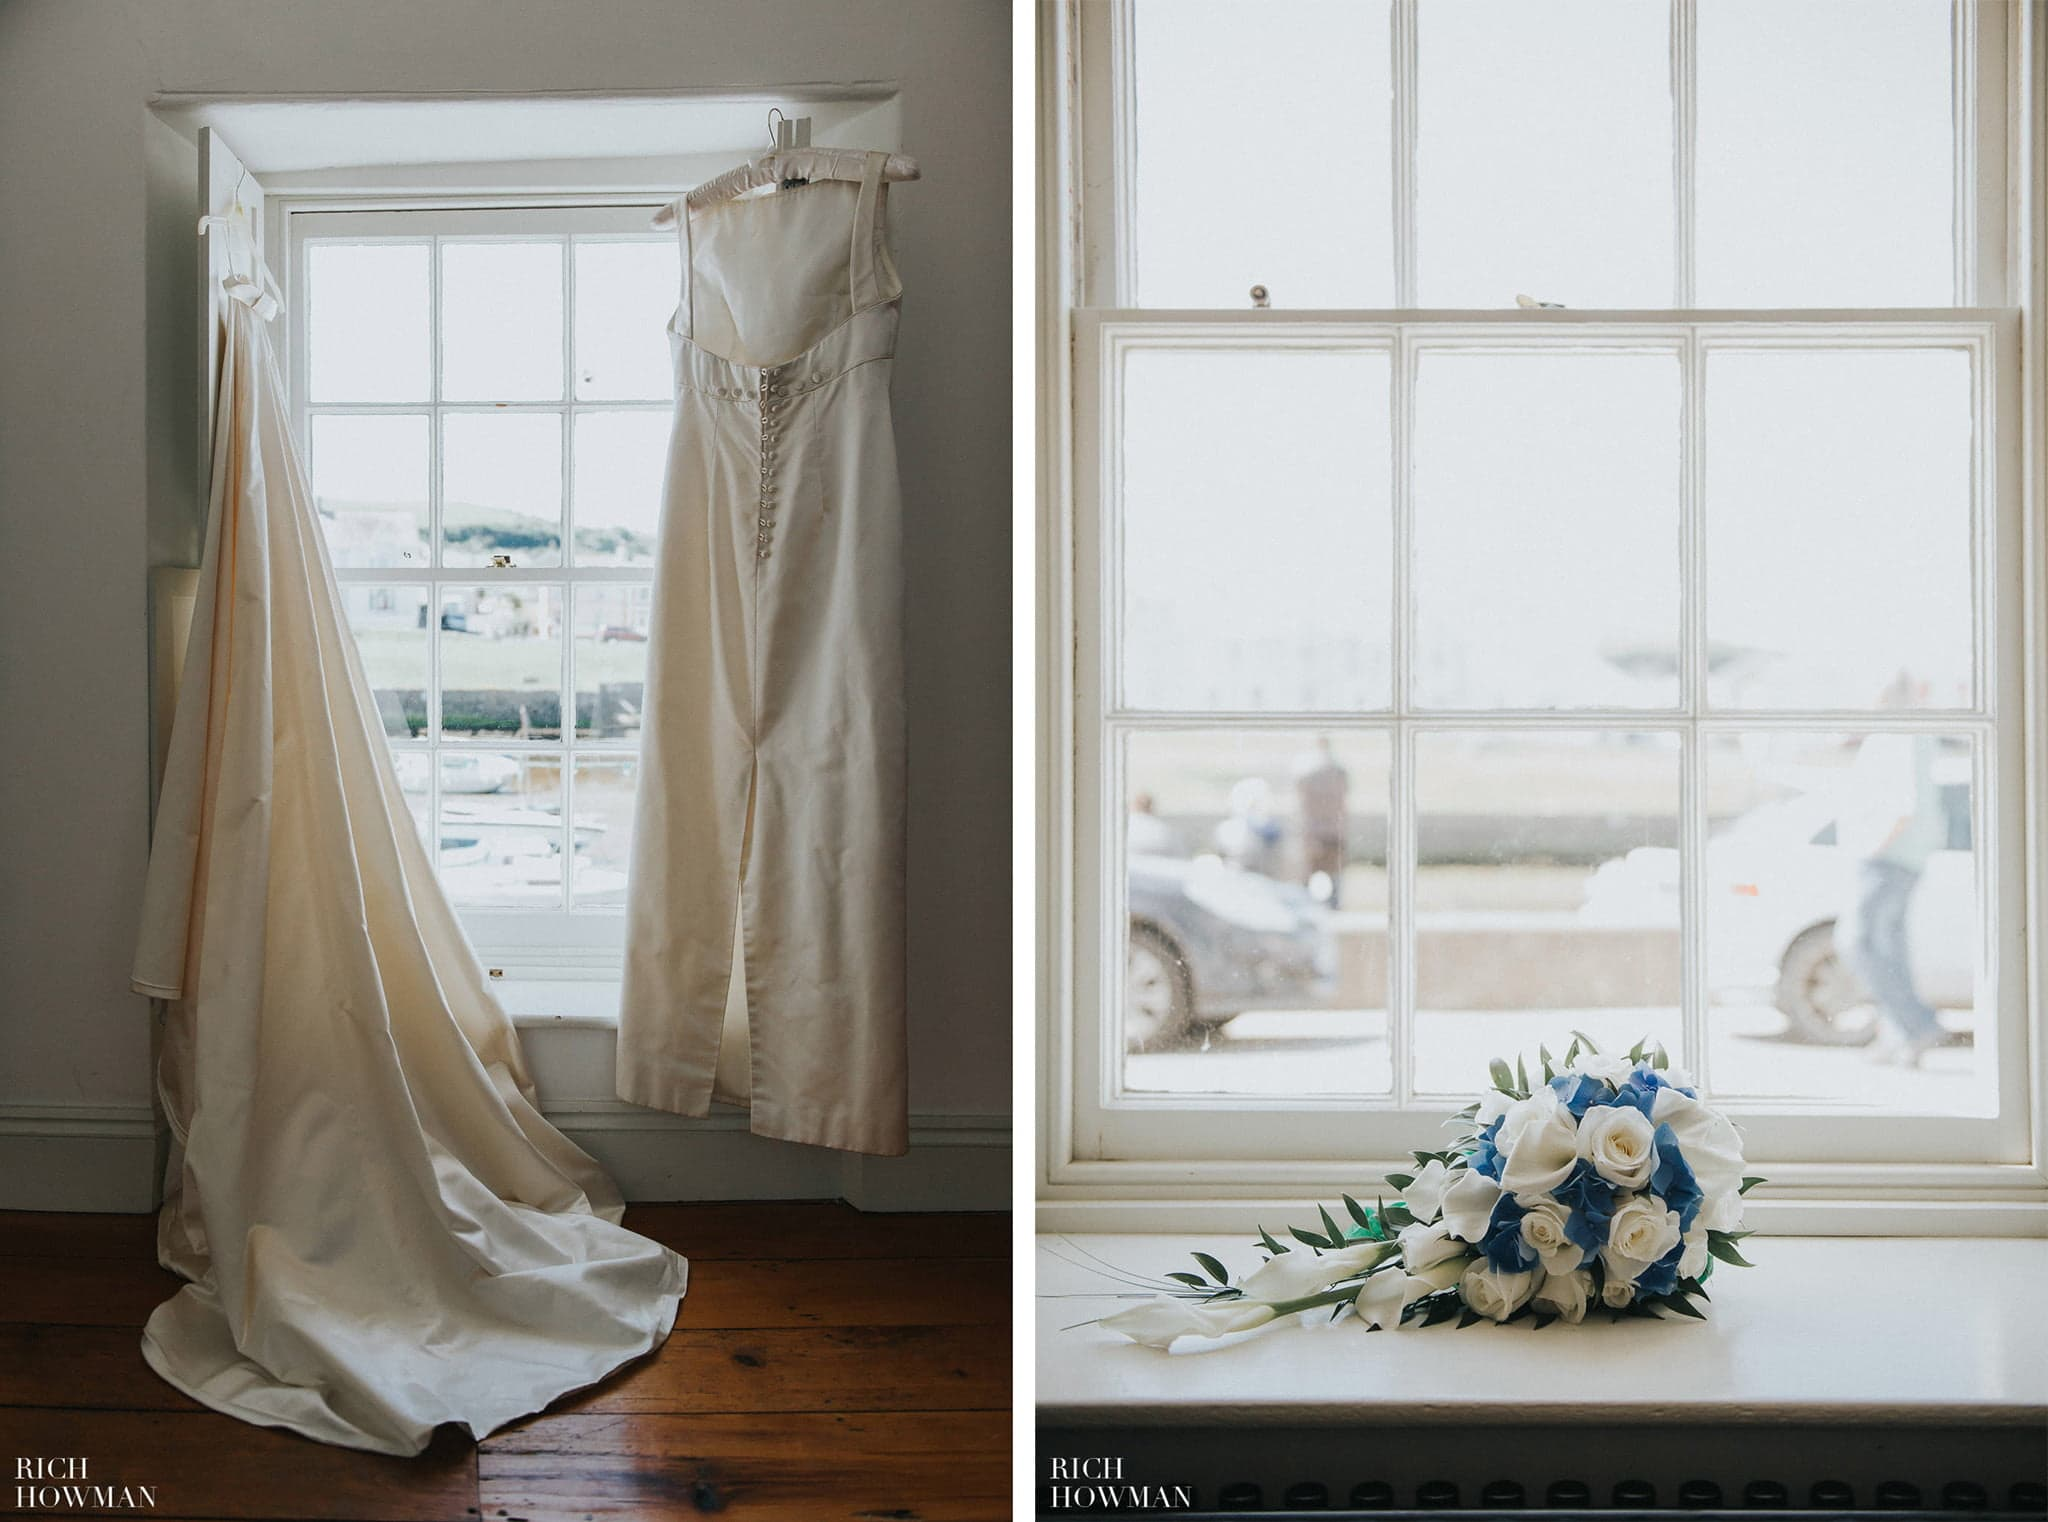 The brides dress photographed hanging in a window before her wedding at llancharaeon.